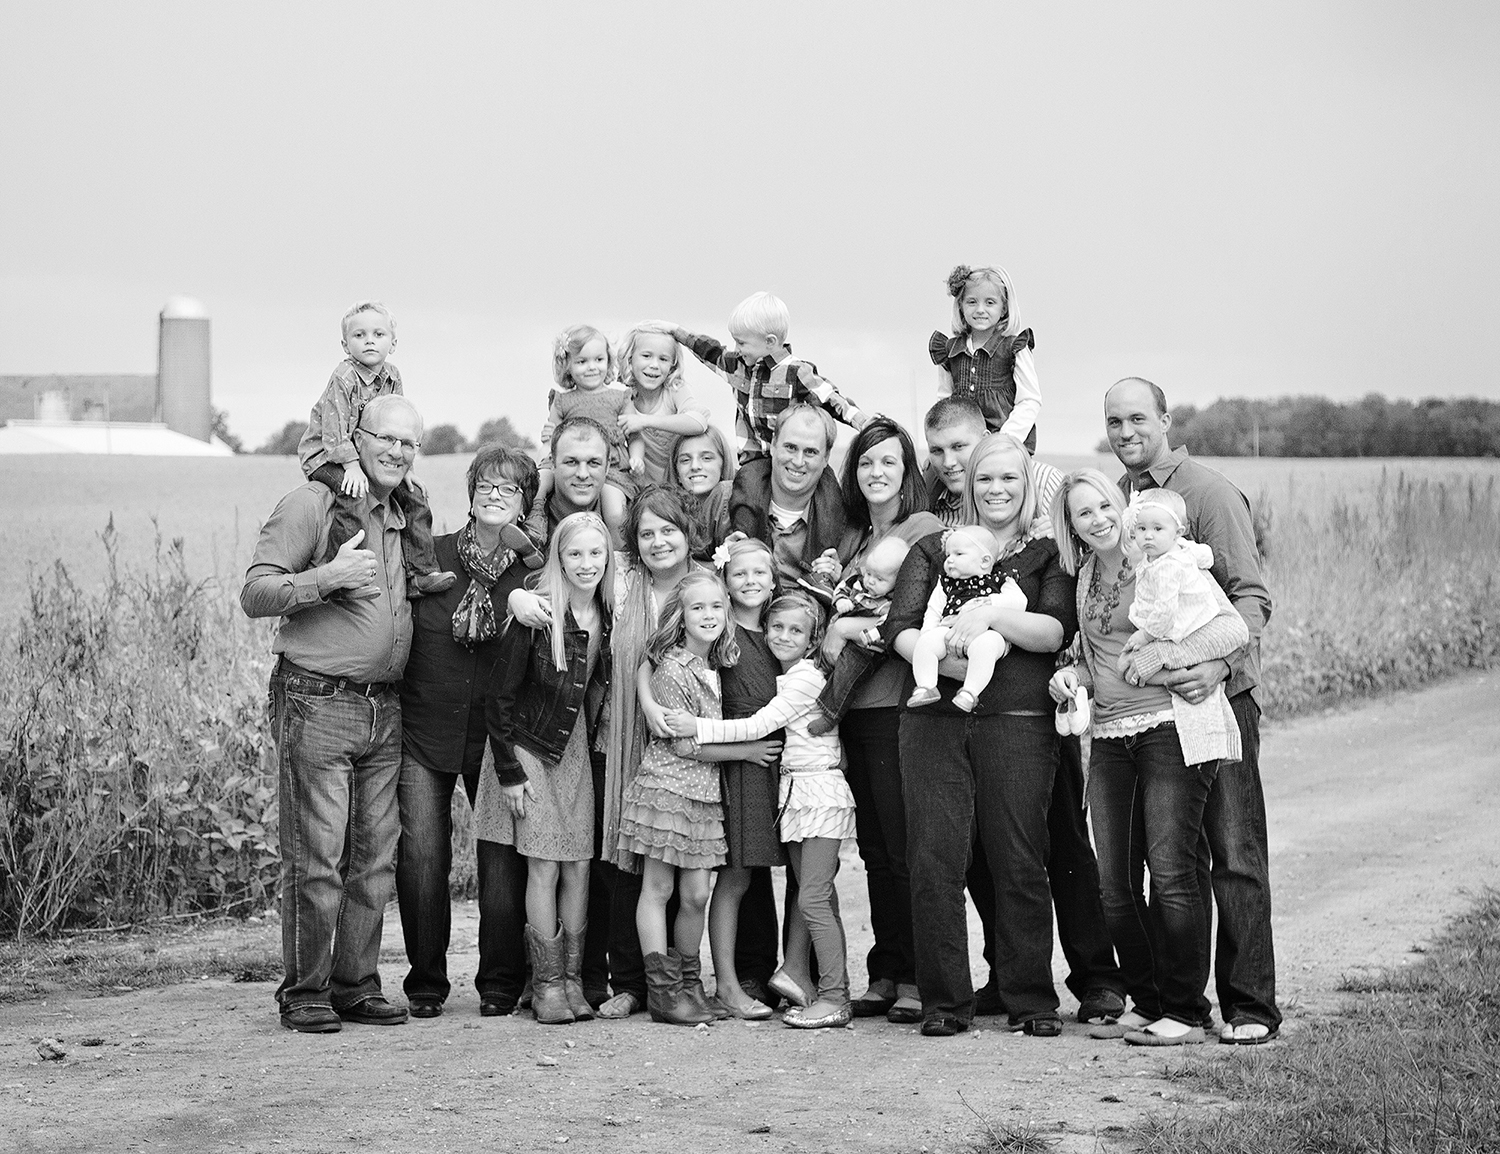 Maria Stein Ohio, Maria Stein Relic Shrine, black and white photography, candid family portrait, outdoor family portrait, extended family portrait, large family picture